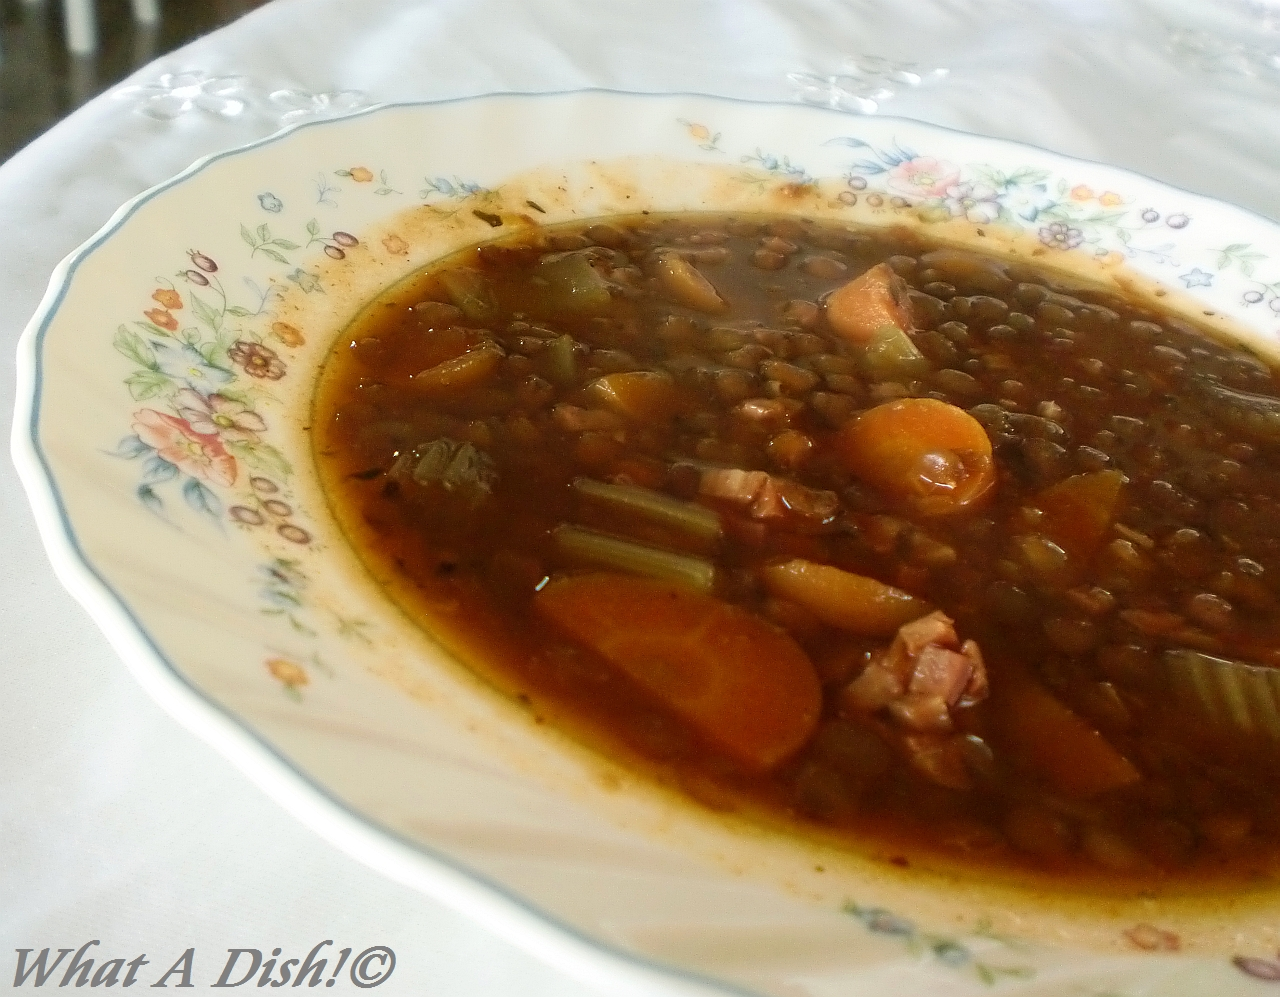 What A Dish!: Slow Cooker Lentil and Ham Soup